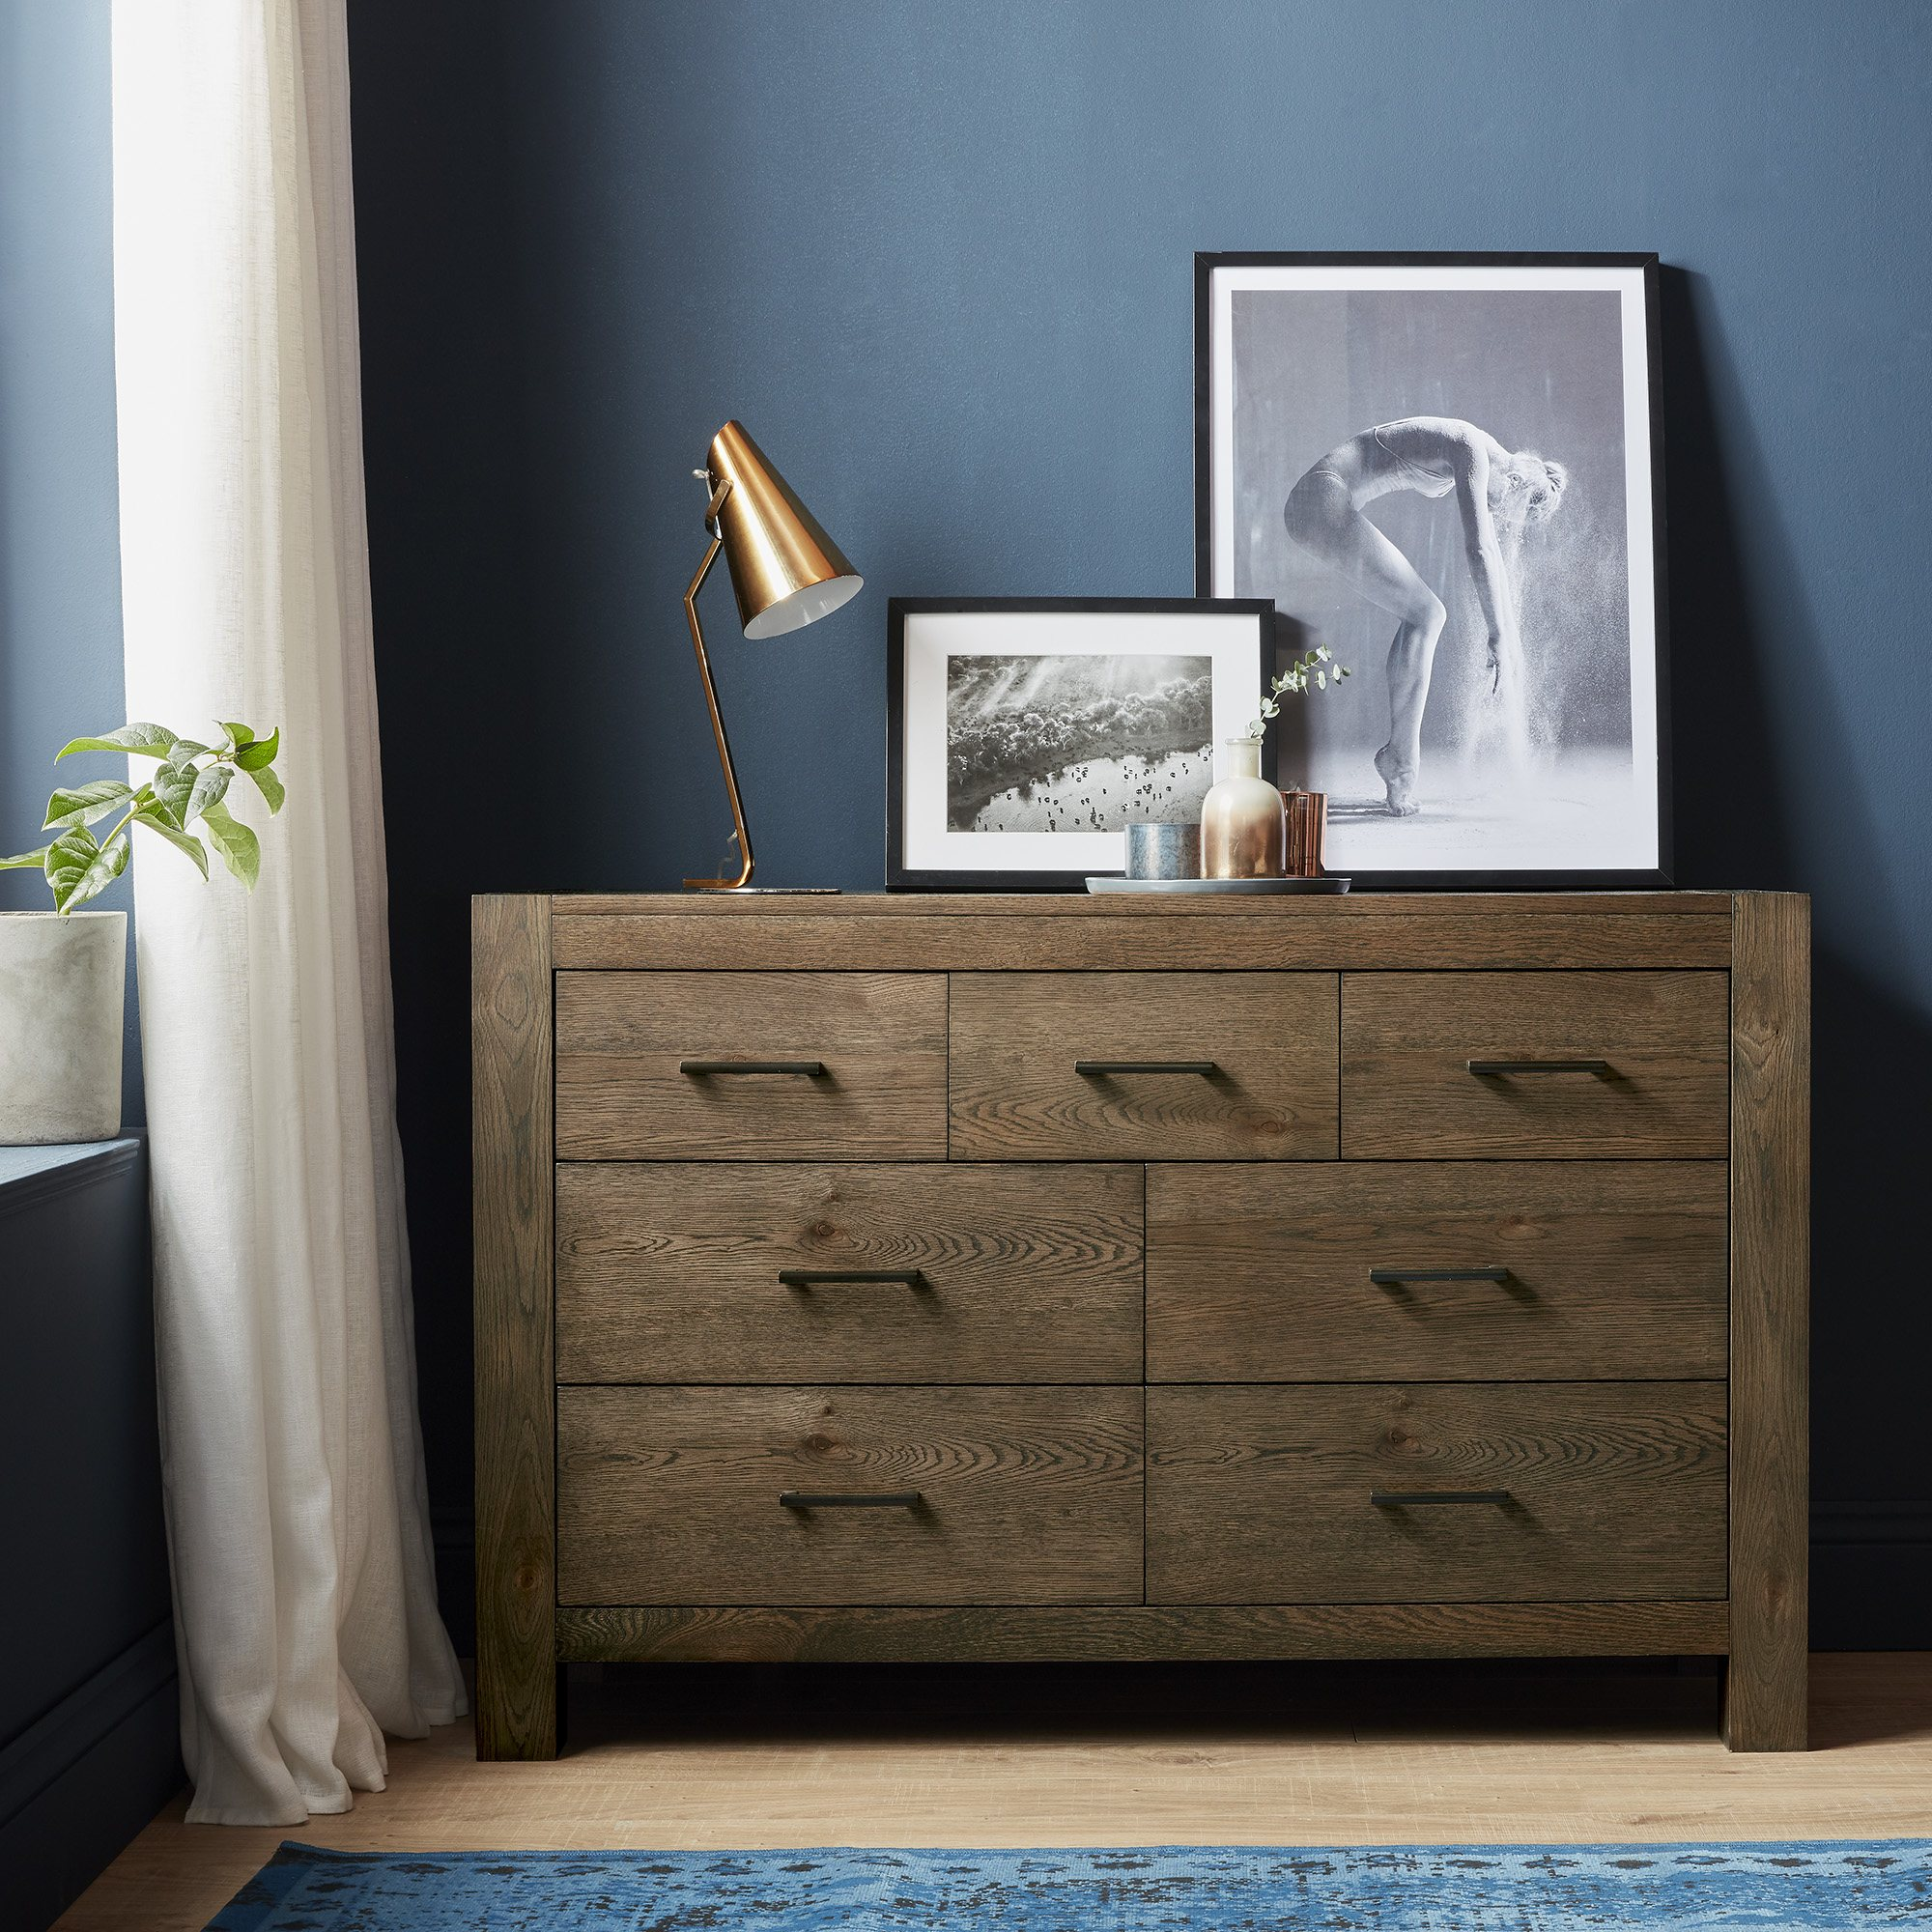 LILLE DARK OAK WIDE CHEST - L134cm x D47cm x H87cm